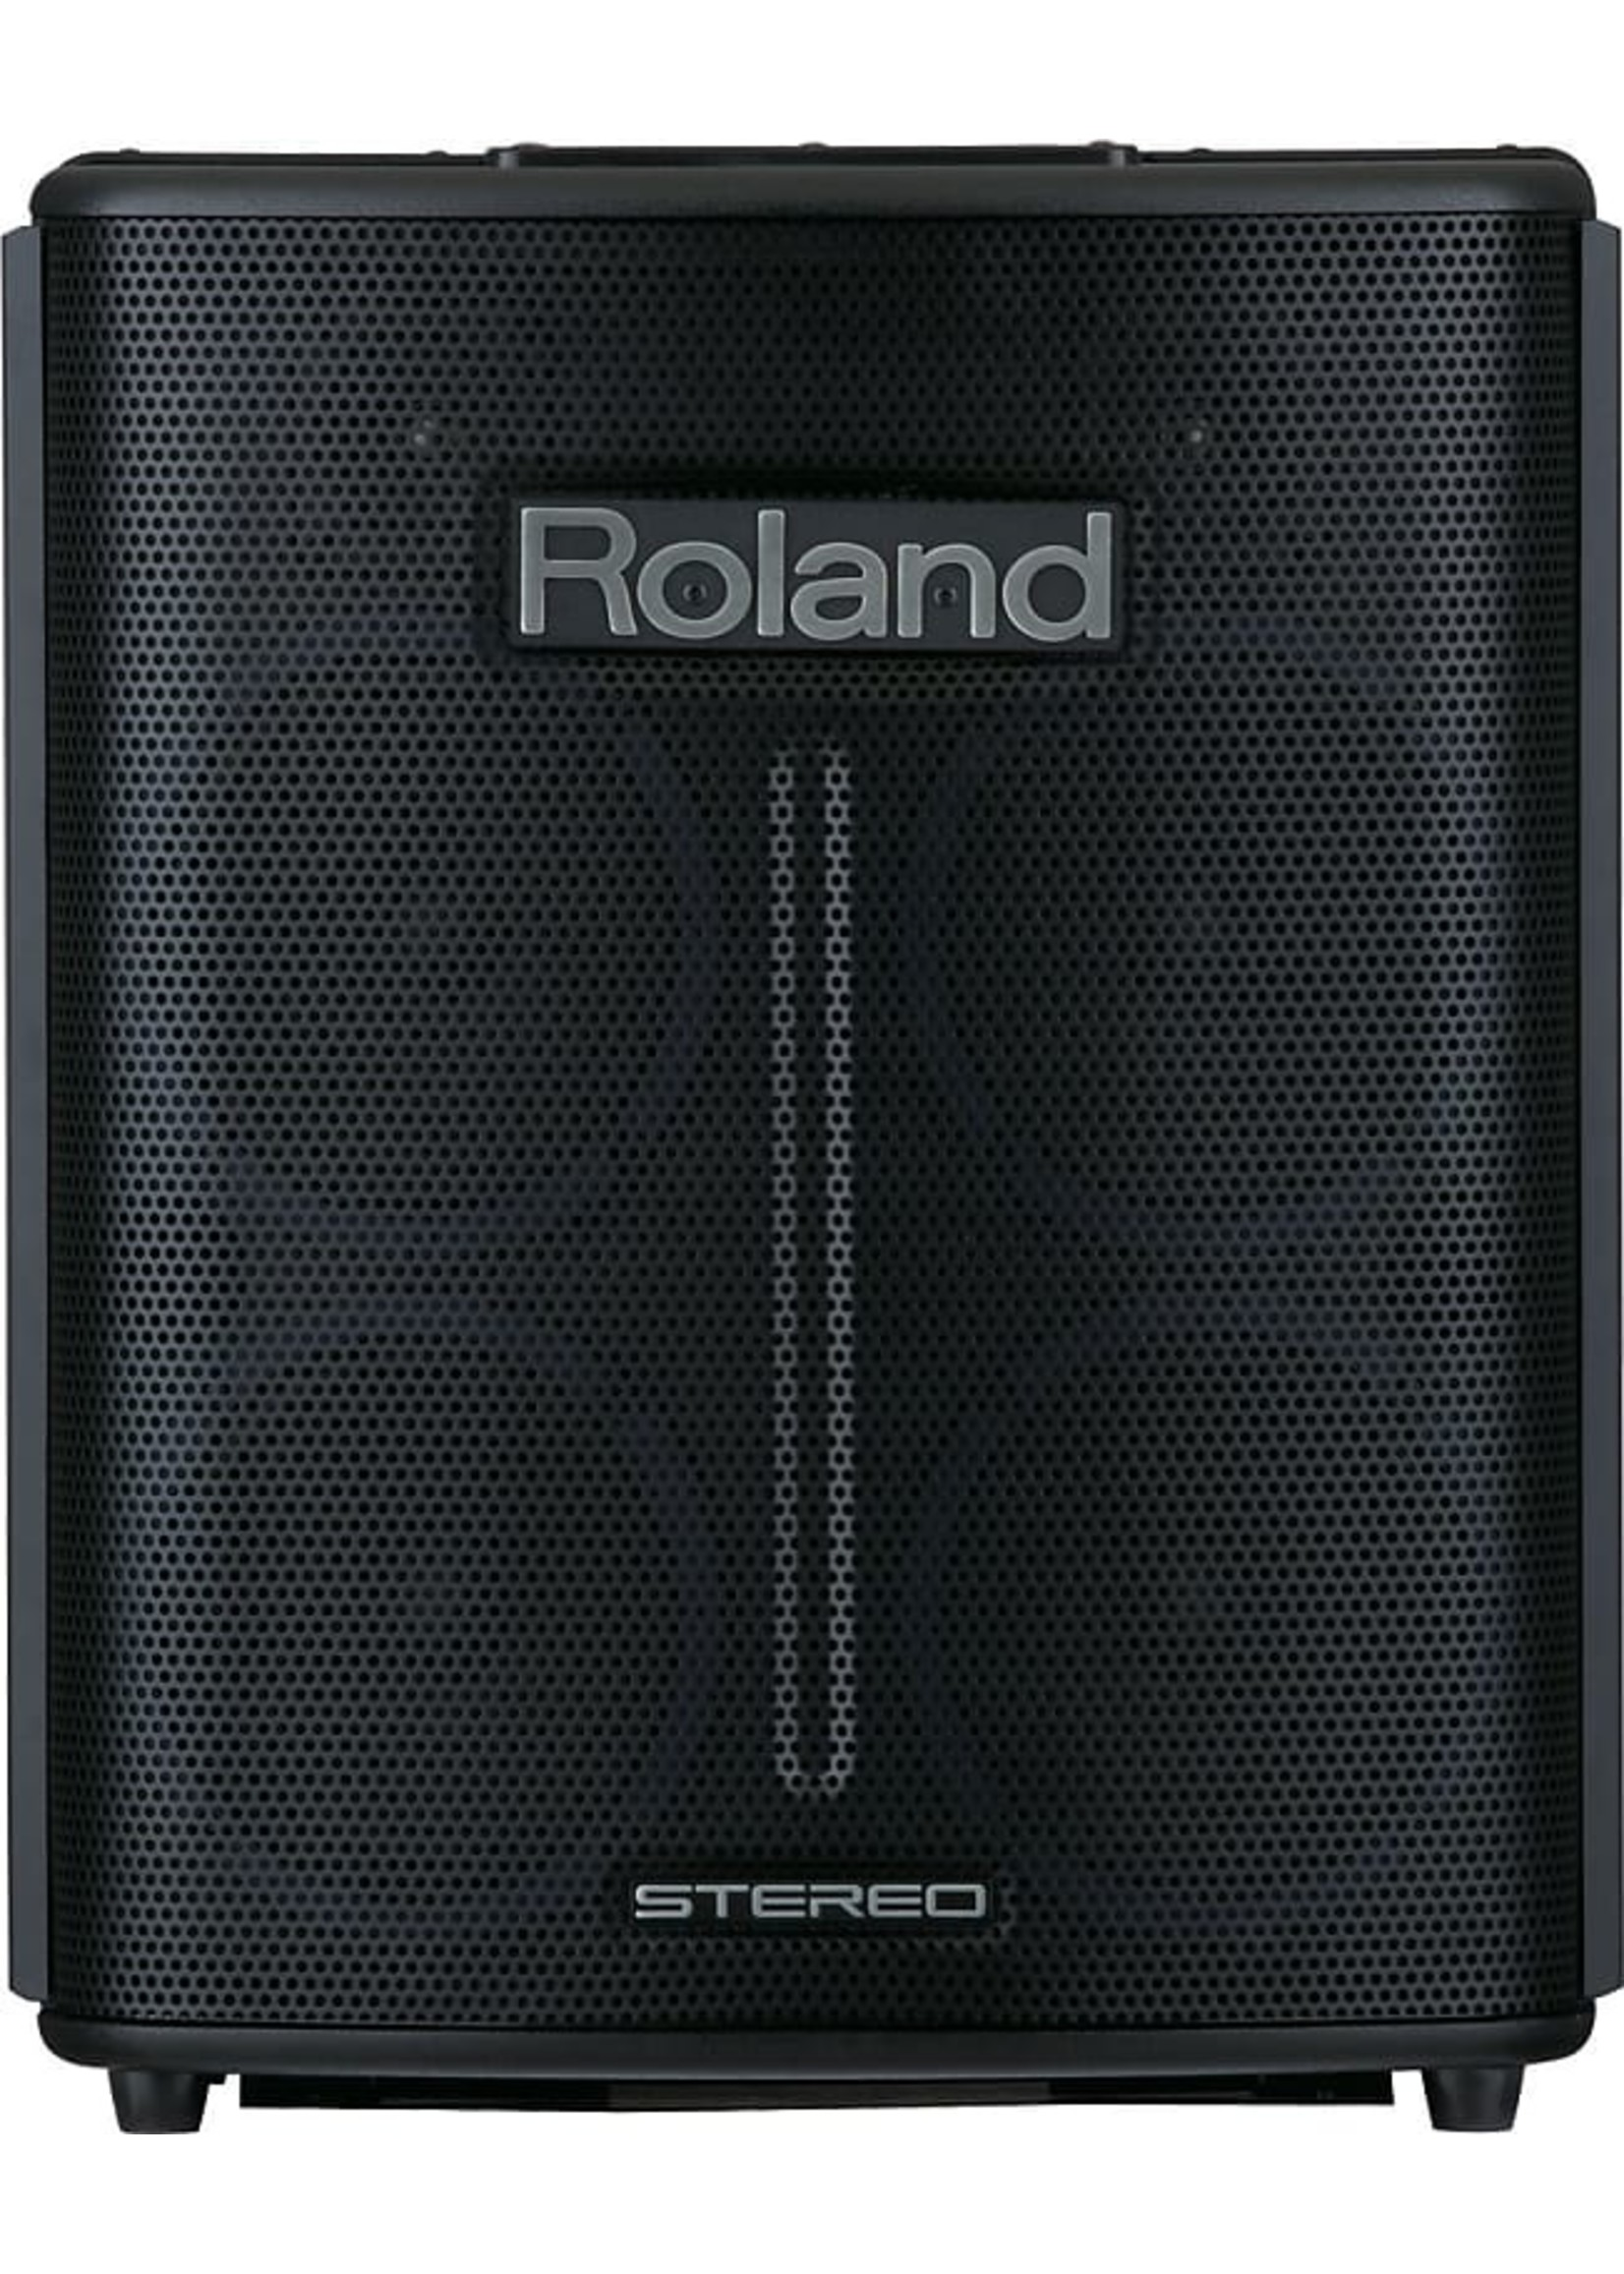 Roland ROLAND BA-330 Stereo Portable PA System